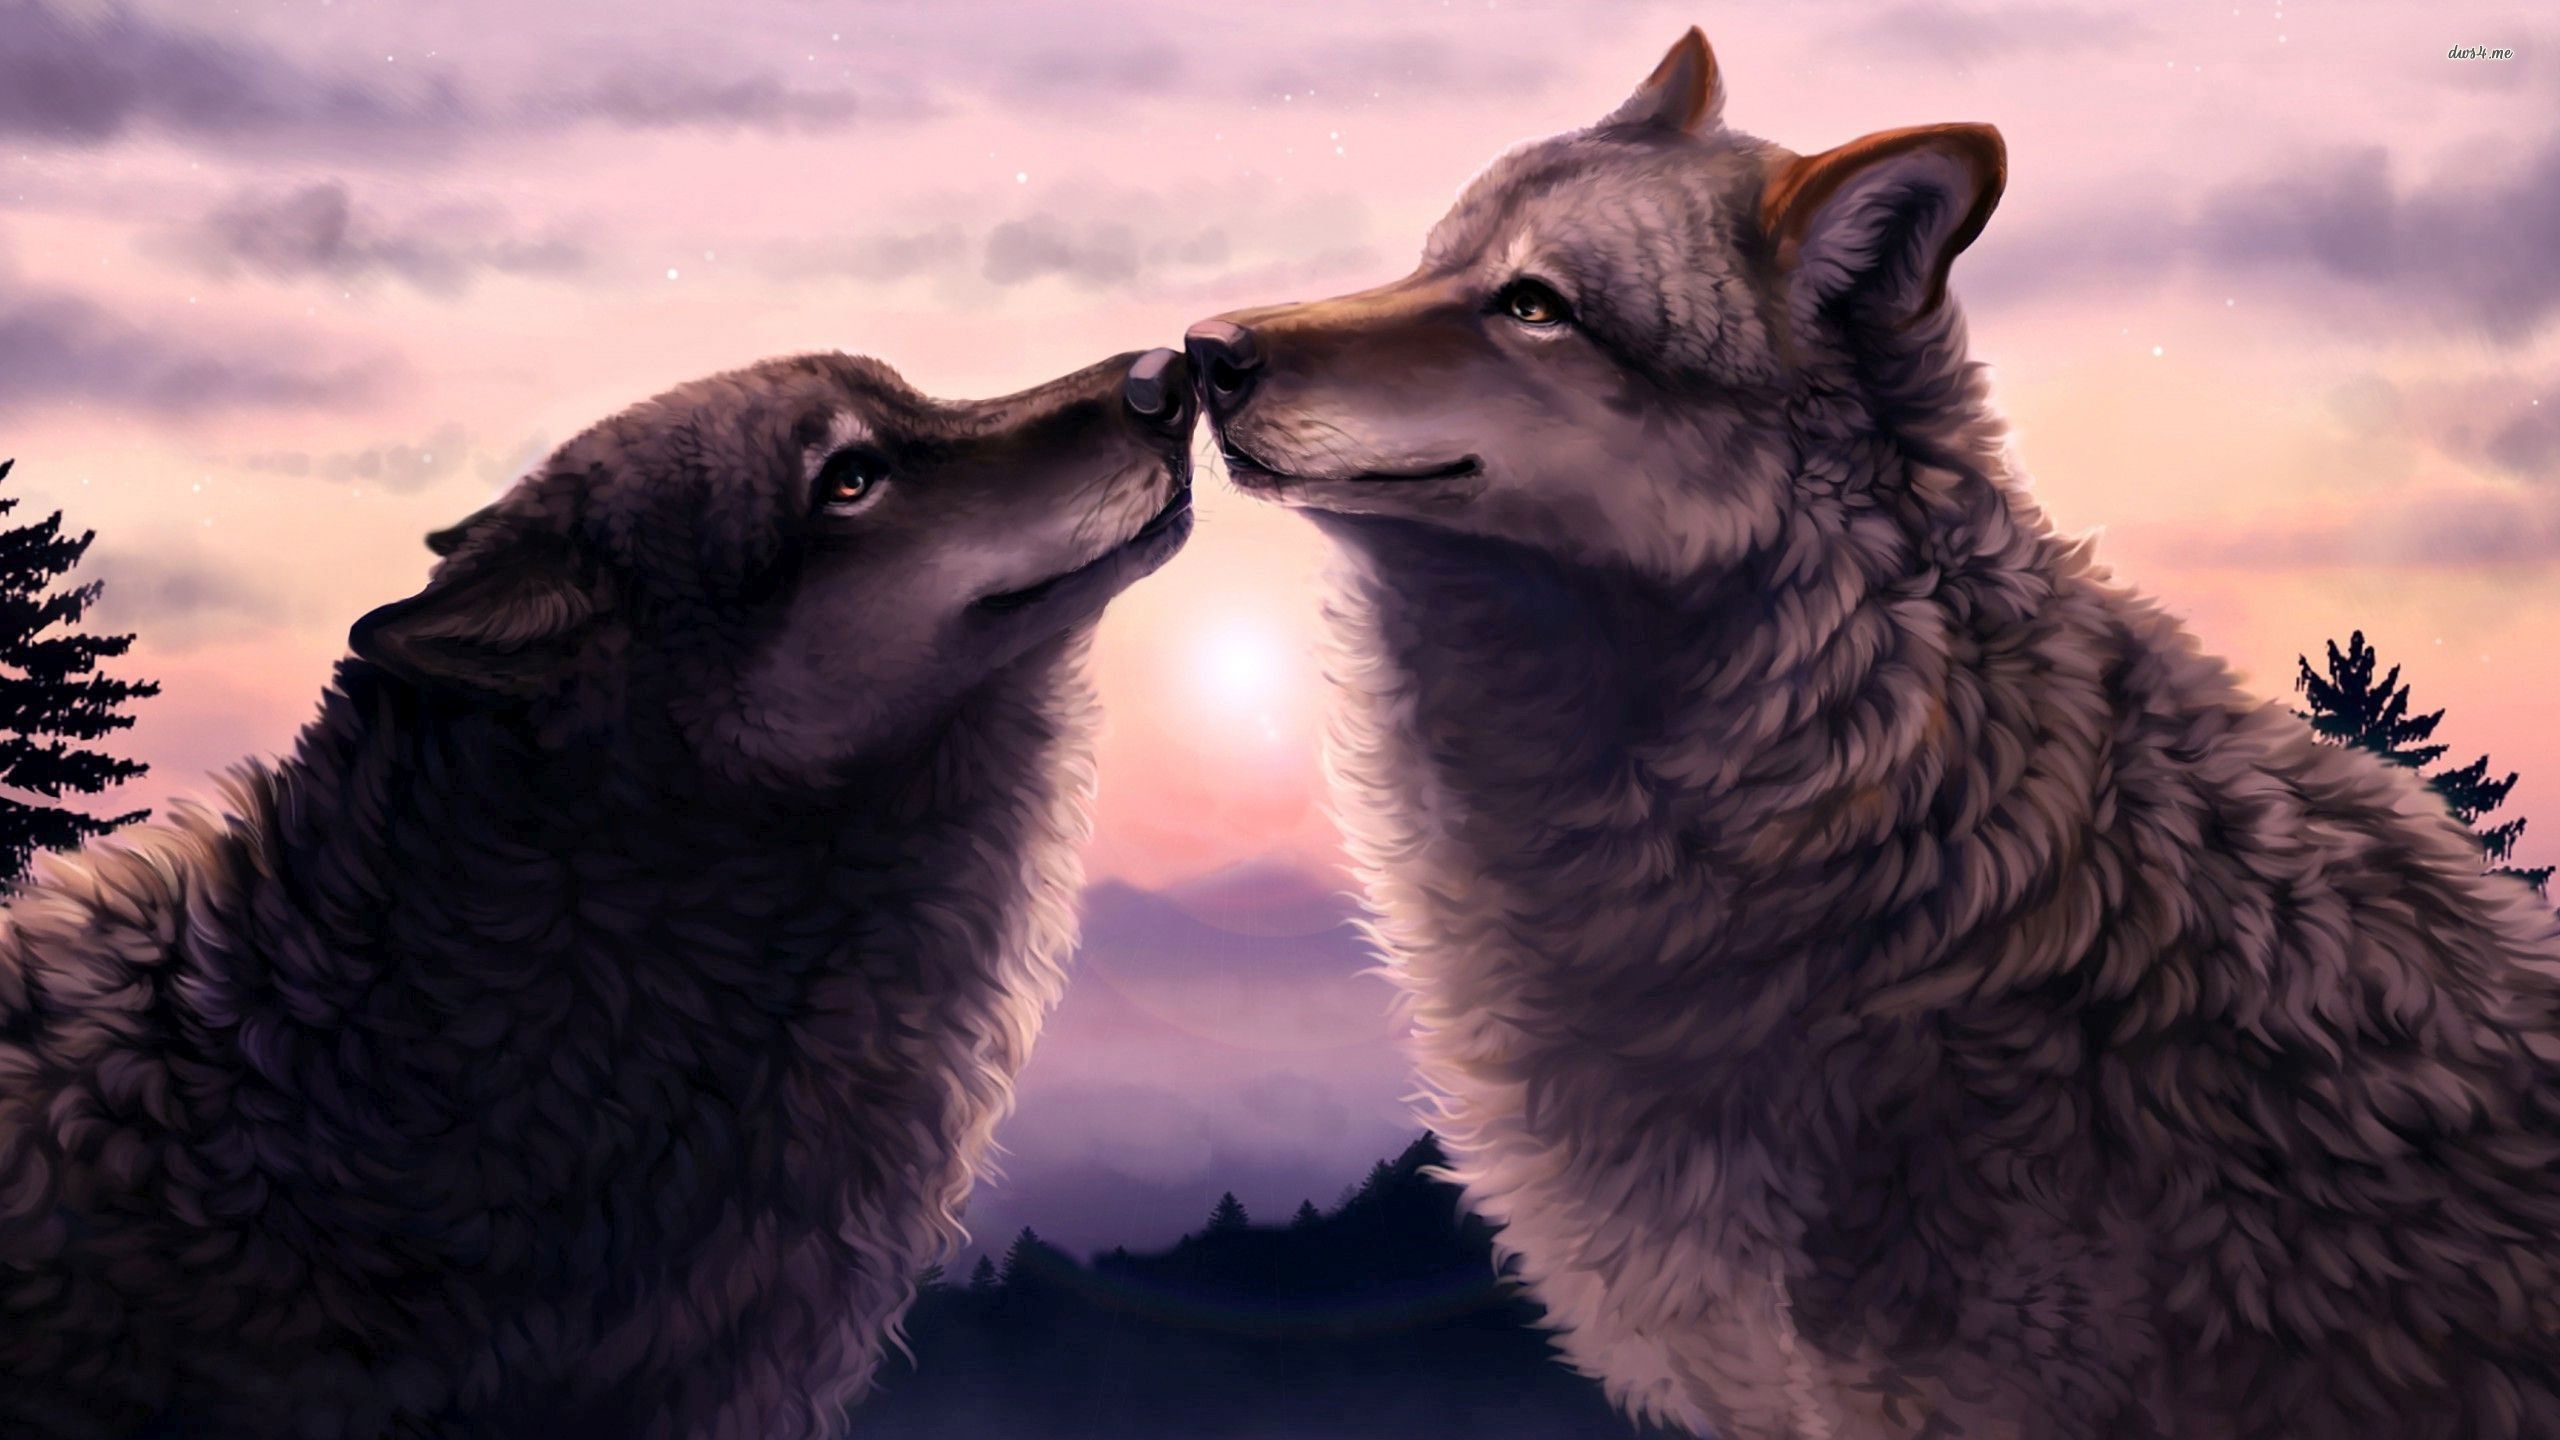 2560x1440 Wolves love wallpaper - Artistic wallpapers - #29885